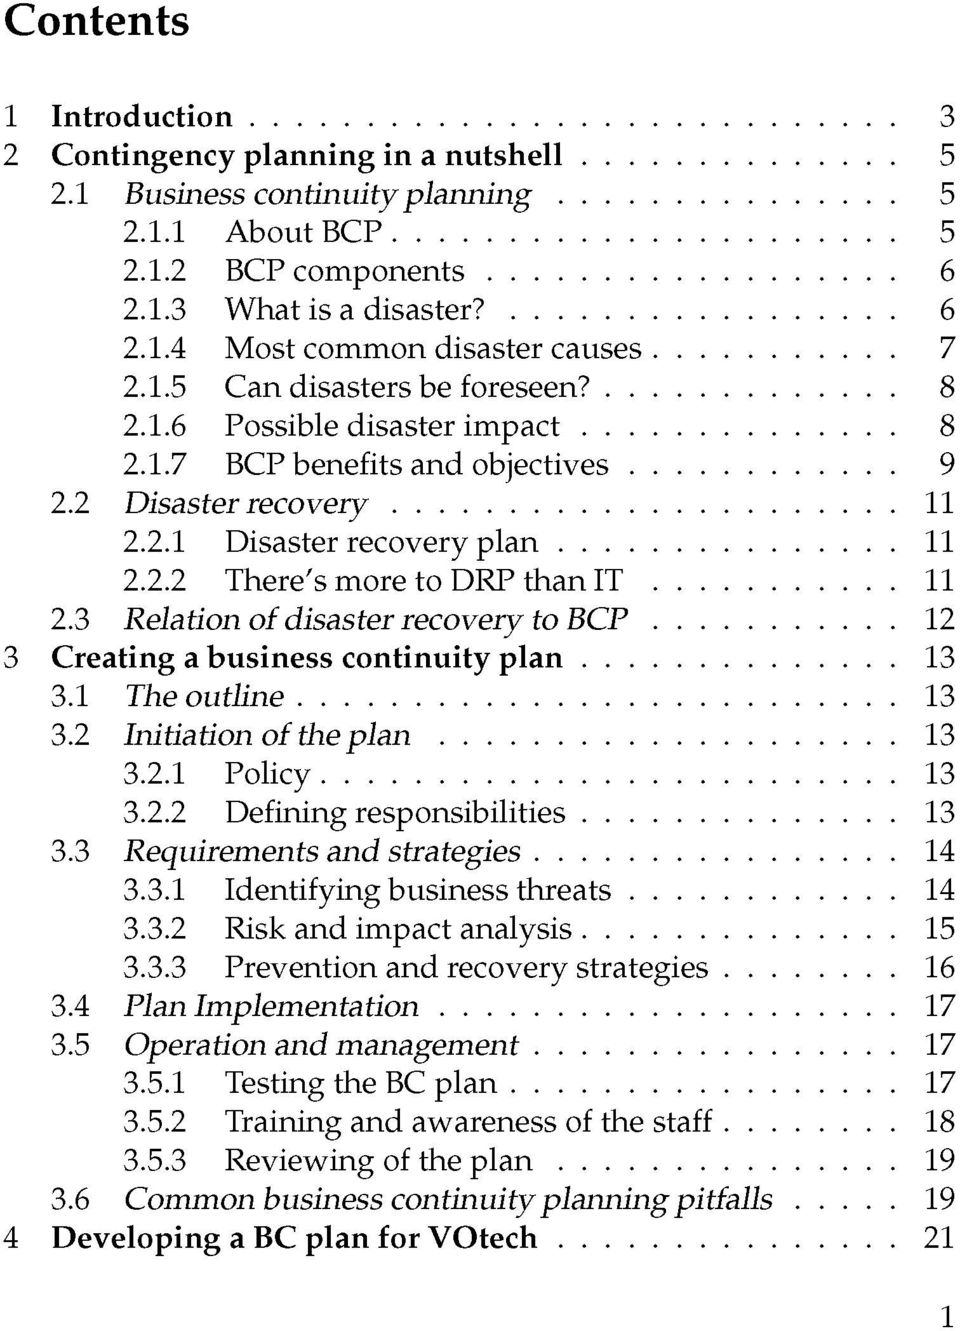 3 Relation of disaster recovery to BCP 12 3 Creating a business continuity plan 13 3.1 The outline 13 3.2 Initiation of the plan 13 3.2.1 Policy 13 3.2.2 Defining responsibilities 13 3.